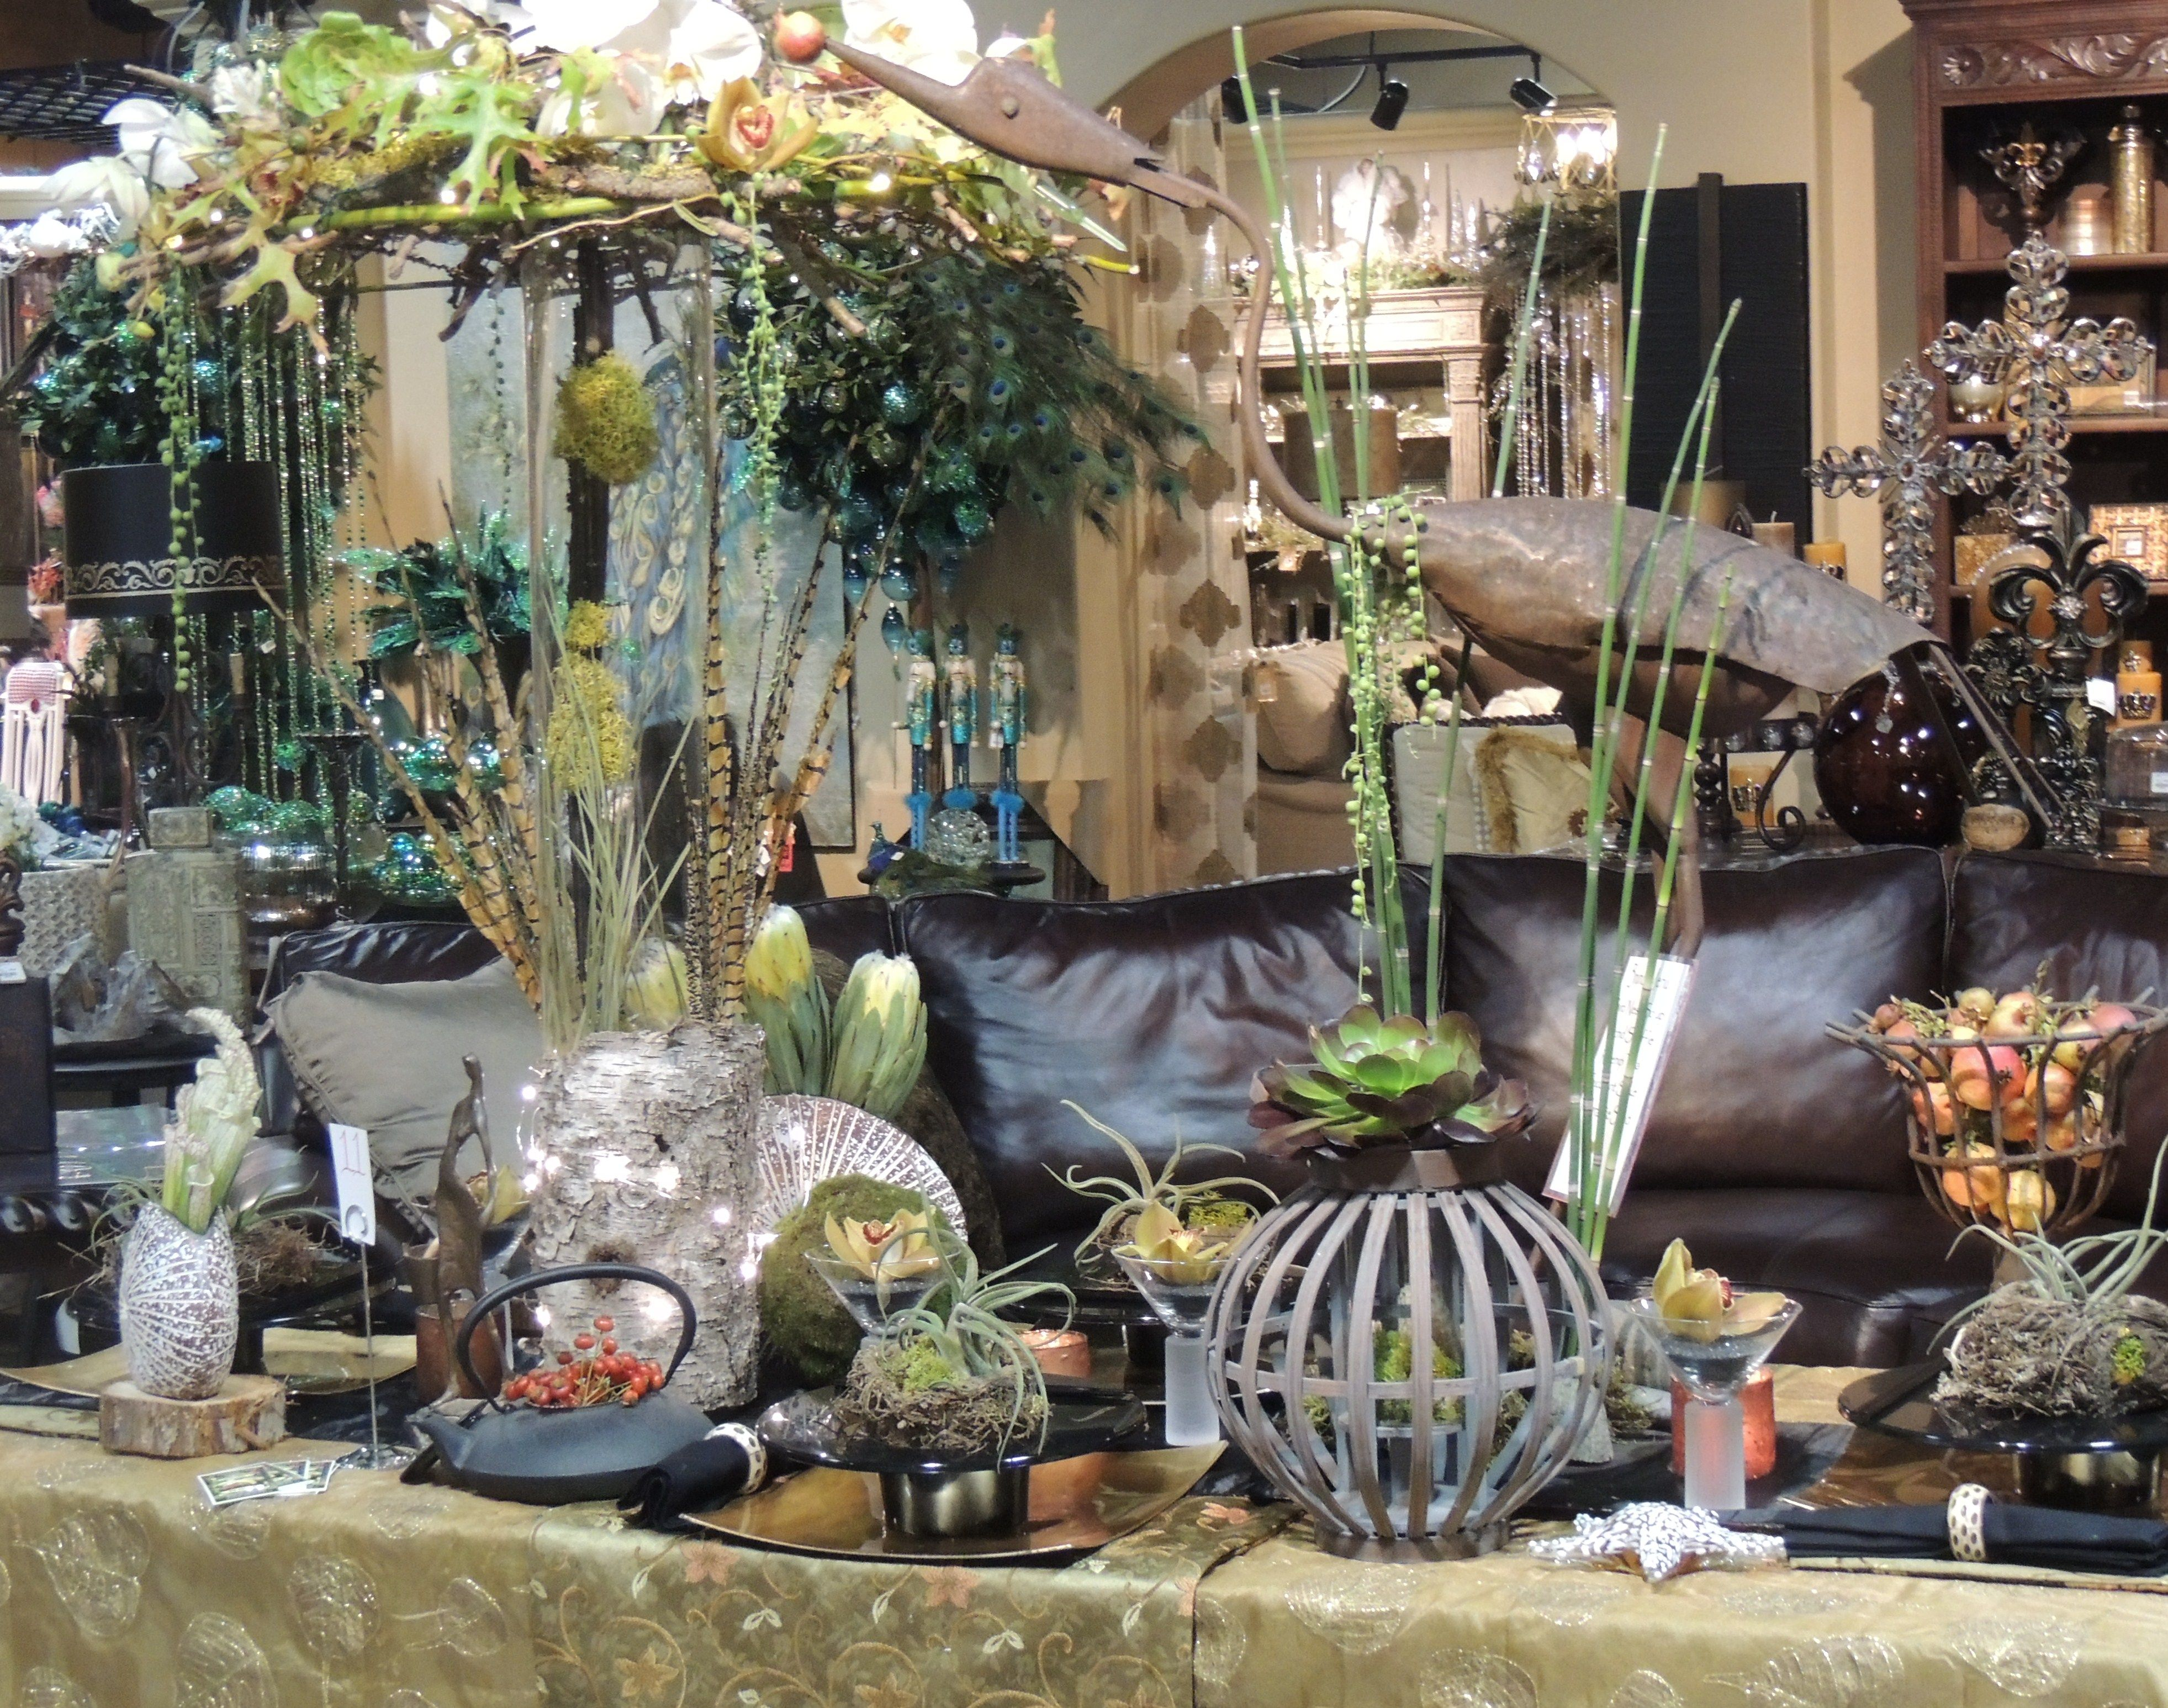 Our beautiful table landscape features natural living plants and flowers along with natural handmade designs.